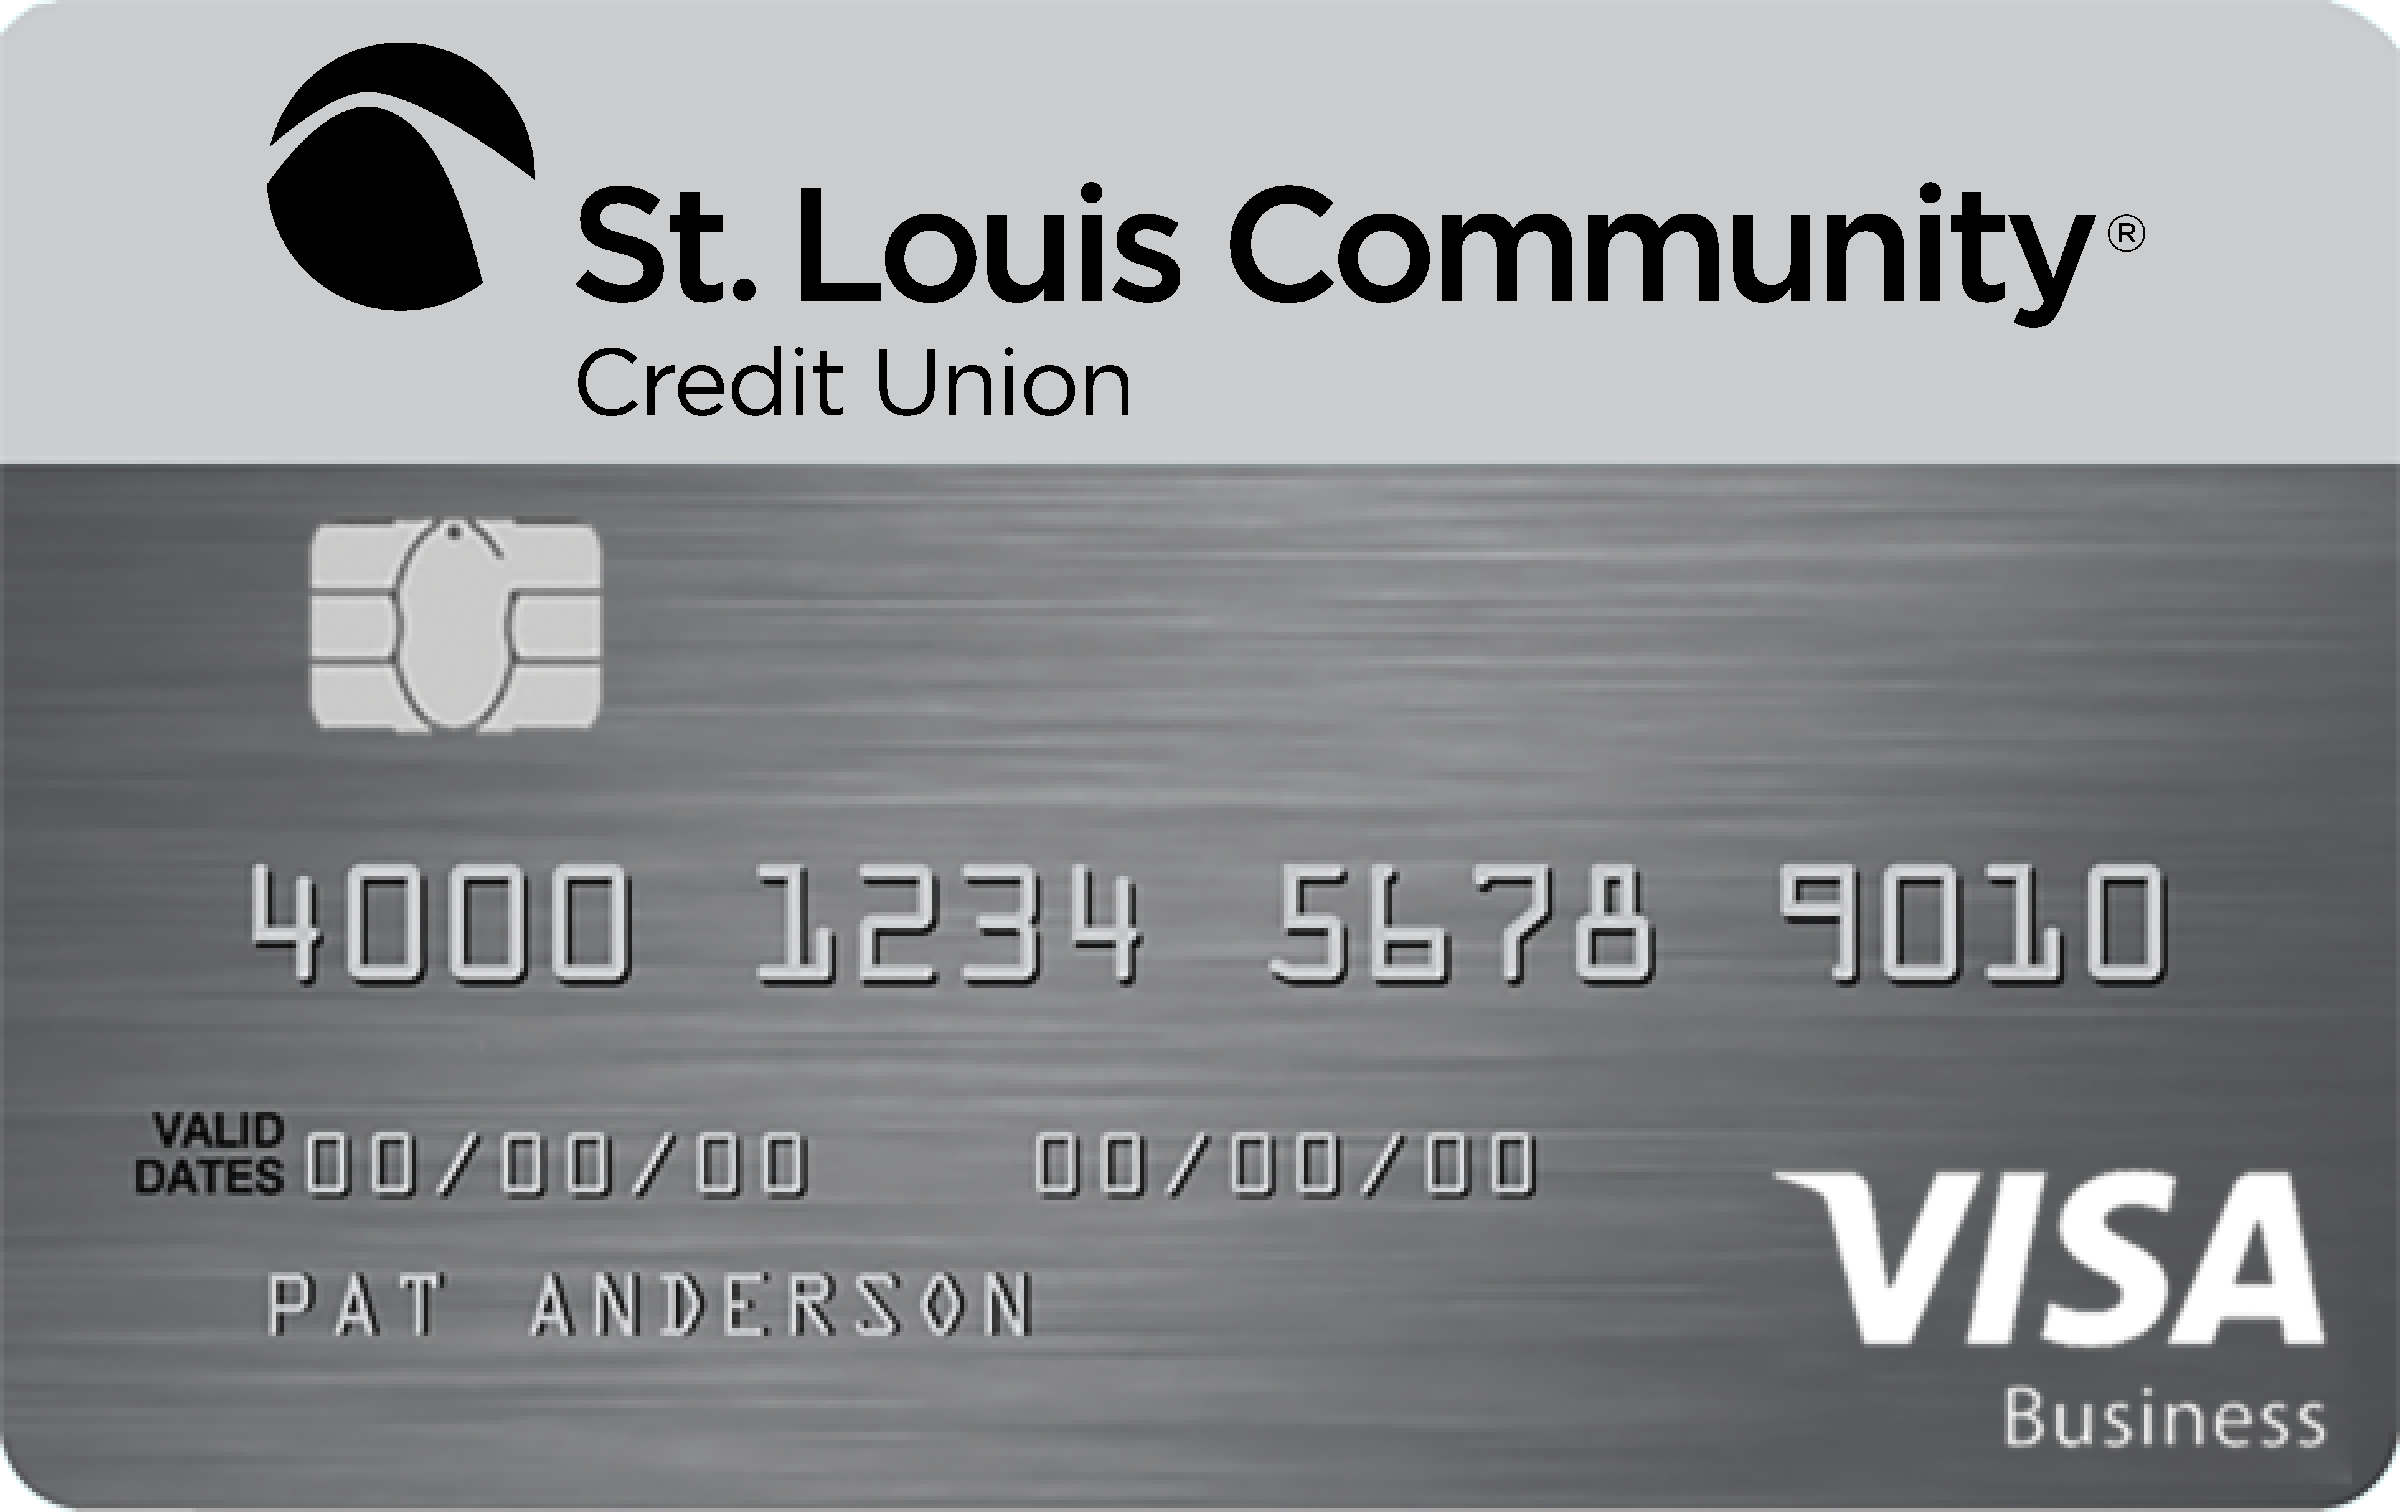 St. Louis Community Credit Union